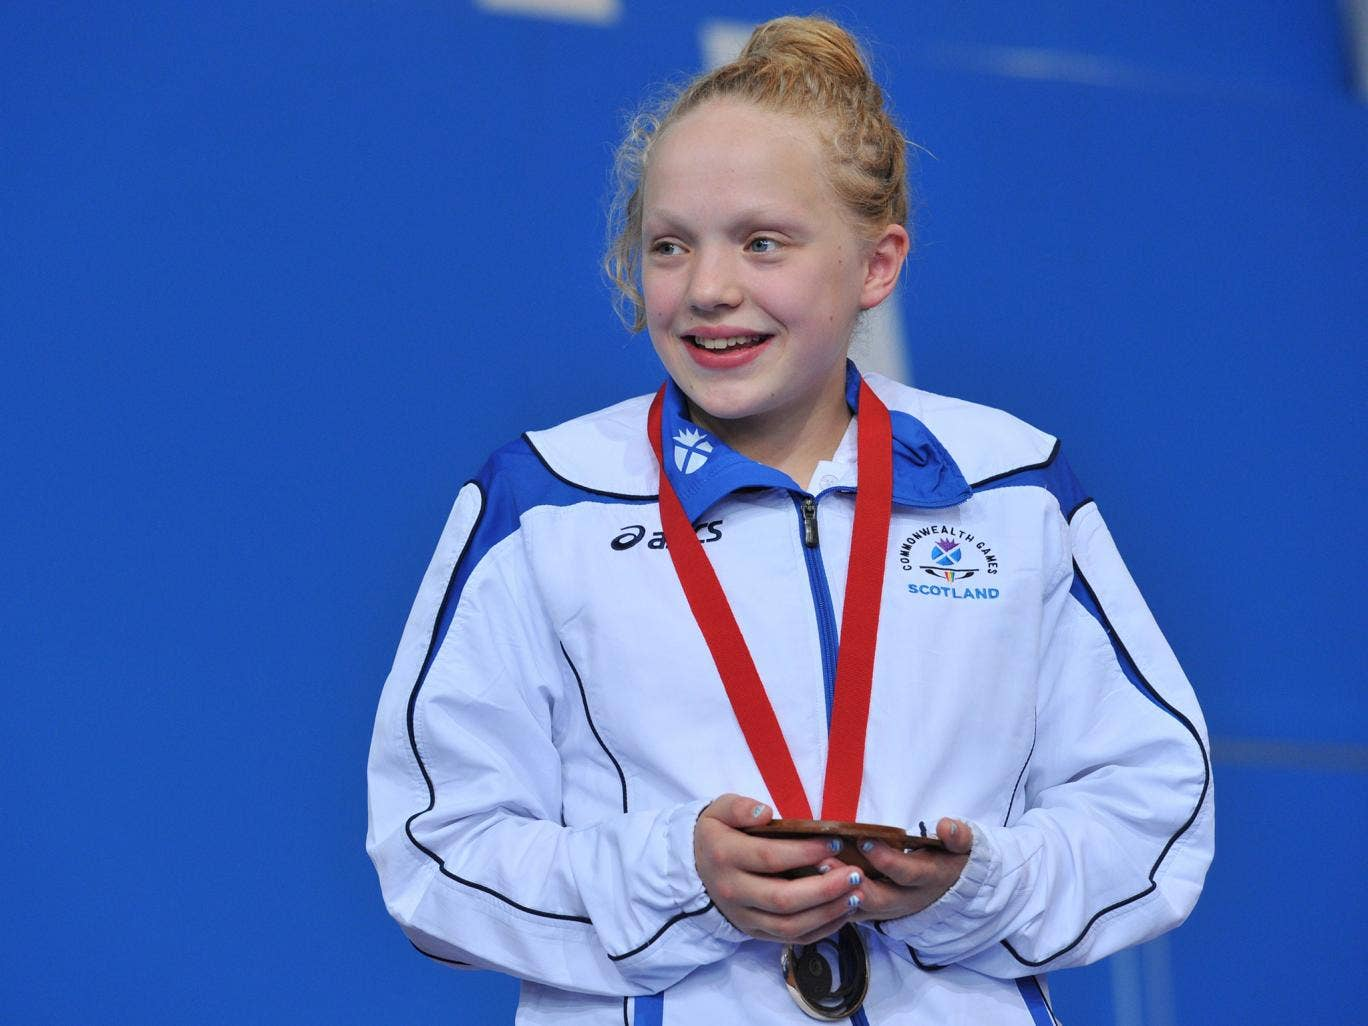 13-year-old Erraid Davies with her bronze medal at the Commonwealth Games